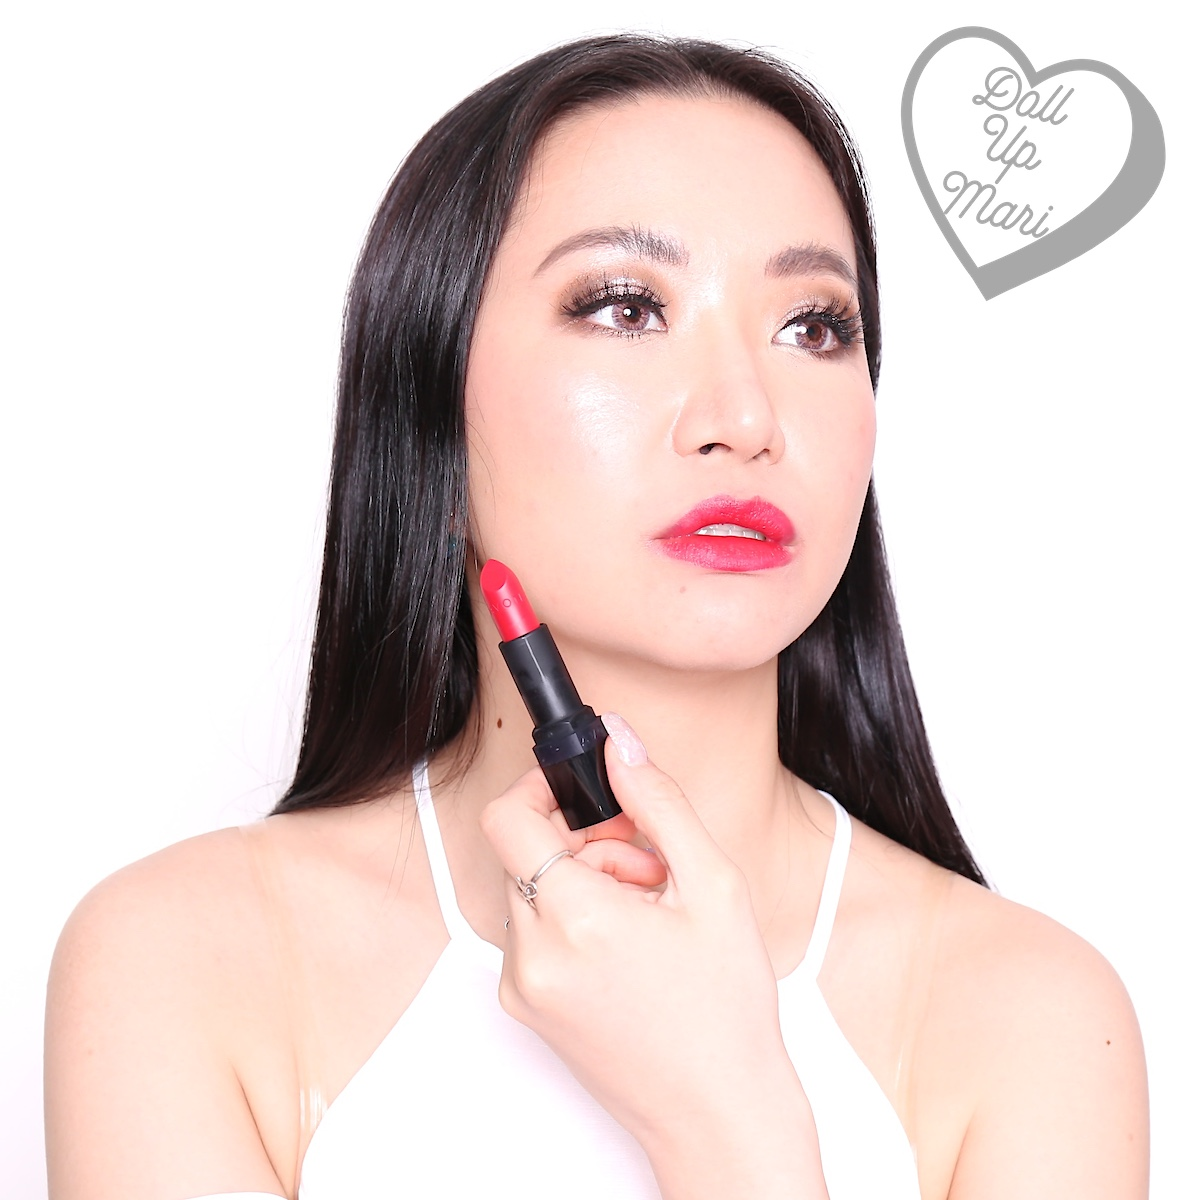 Mari wearing Ruby Kiss shade of AVON Perfectly Matte Lipstick